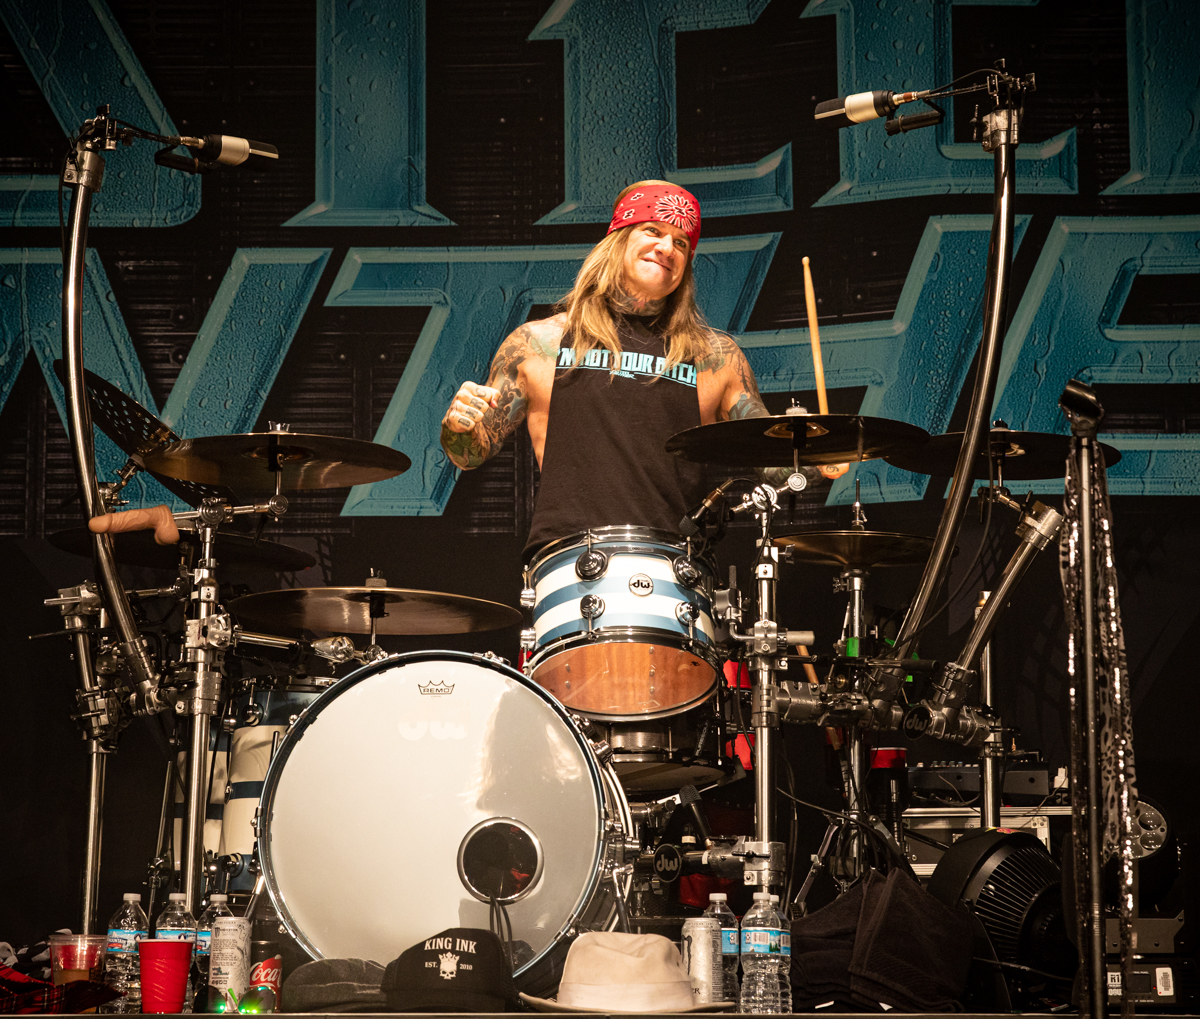 SteelPanther-HouseofBlues-Chicago_IL-20191208-IanBardecki-331